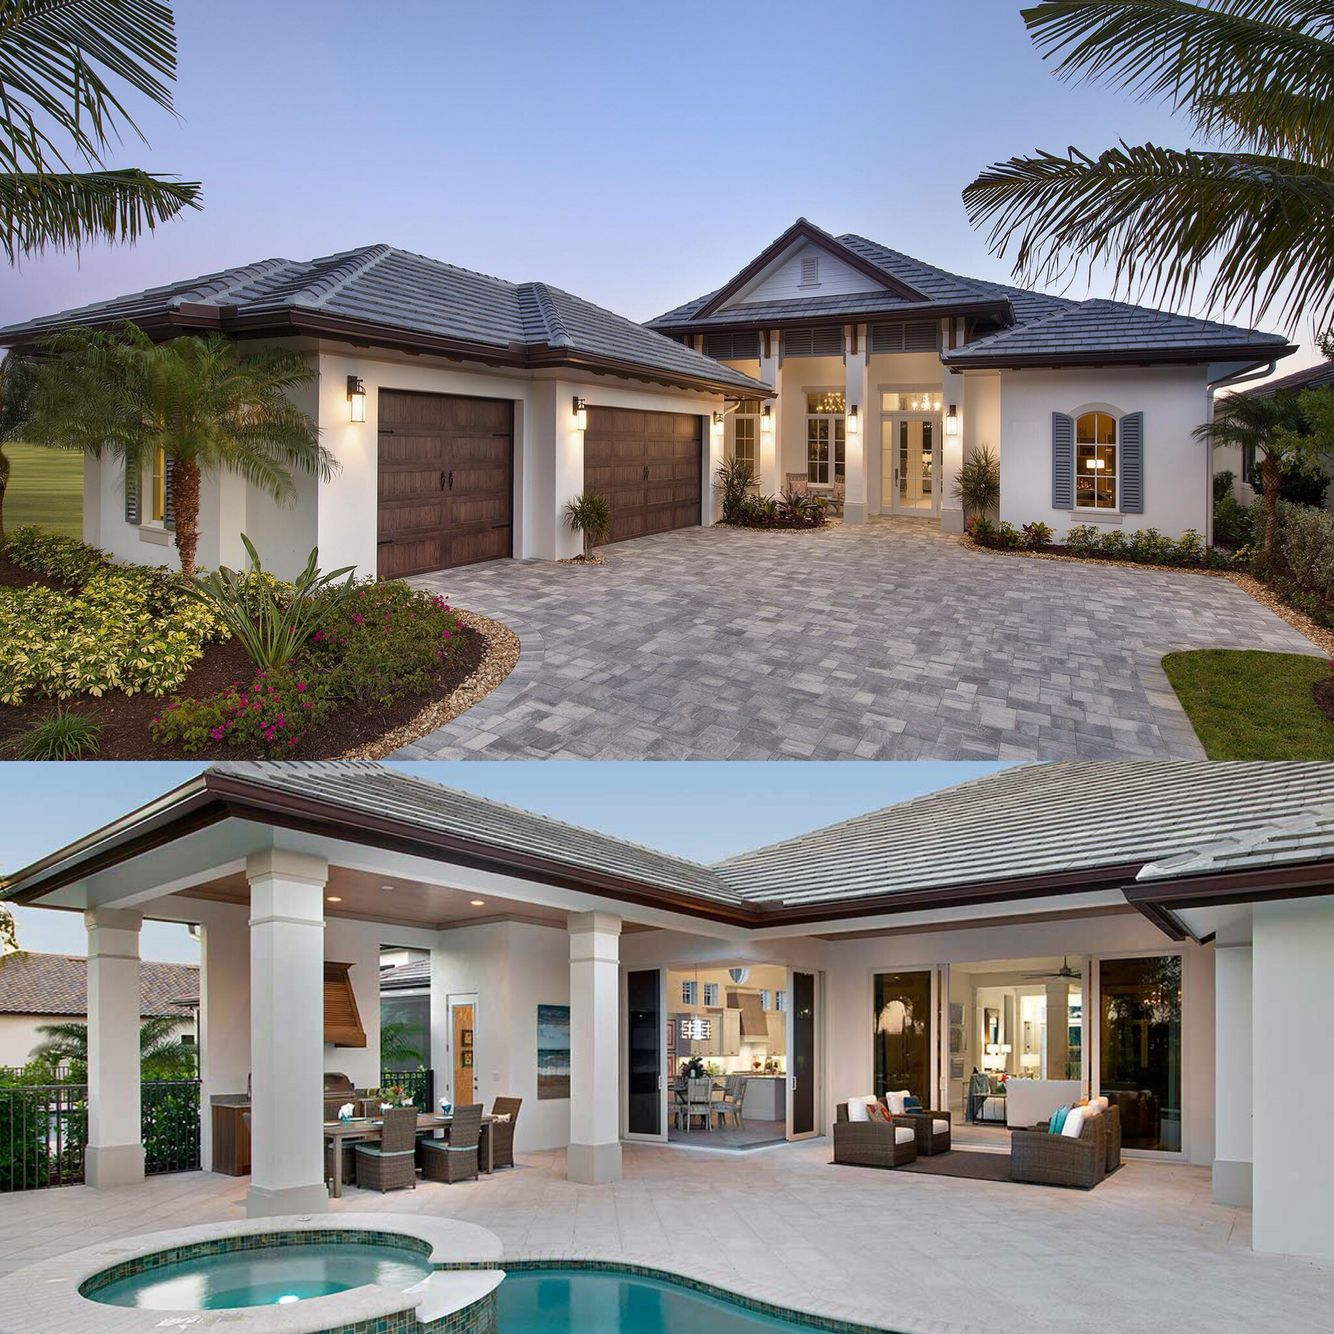 Architectural designs florida house plan 66342we front and back views ready when you are